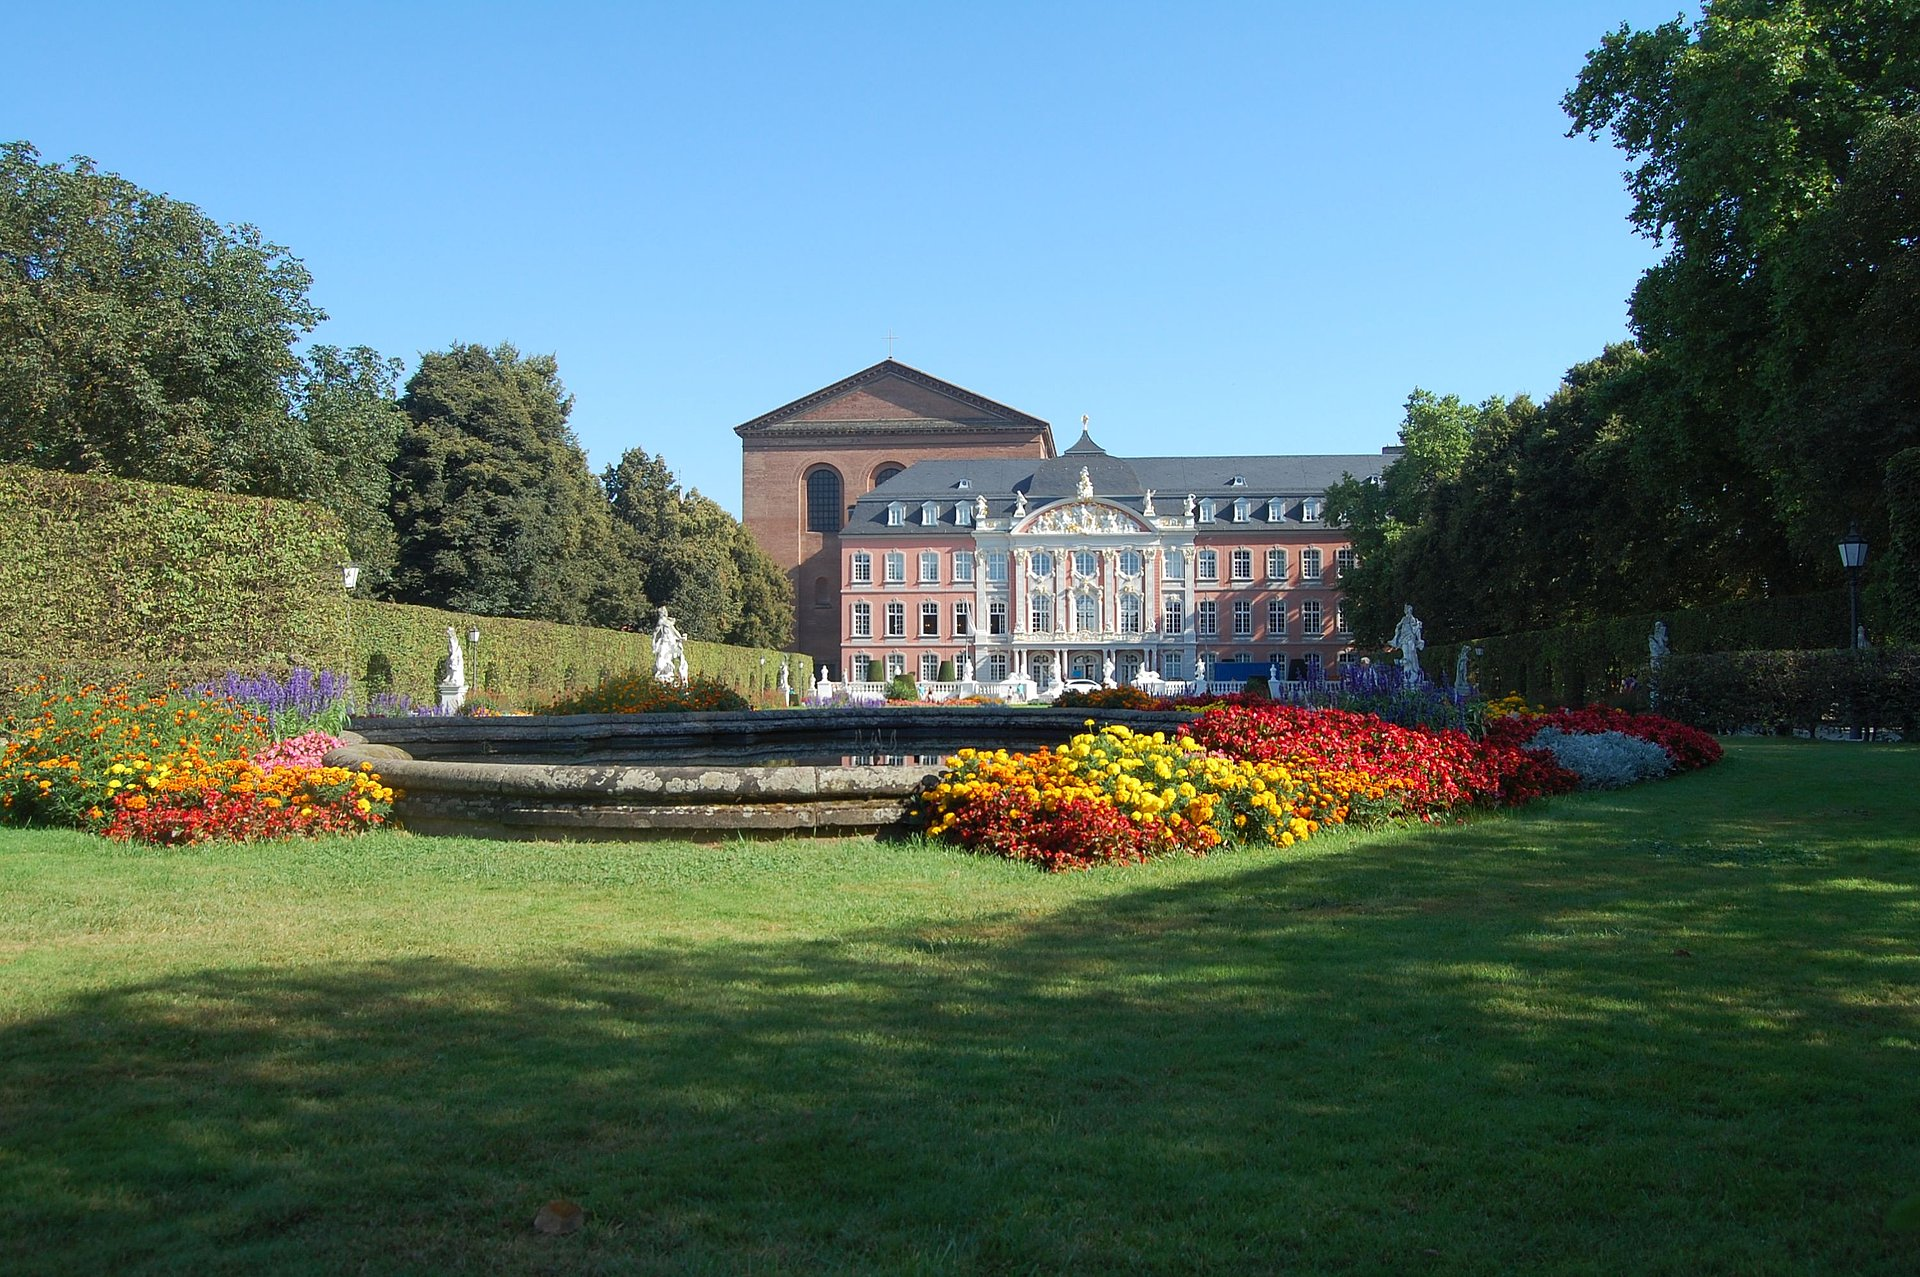 Electoral Palace and Basilica of Constantine in Trier, Moselle